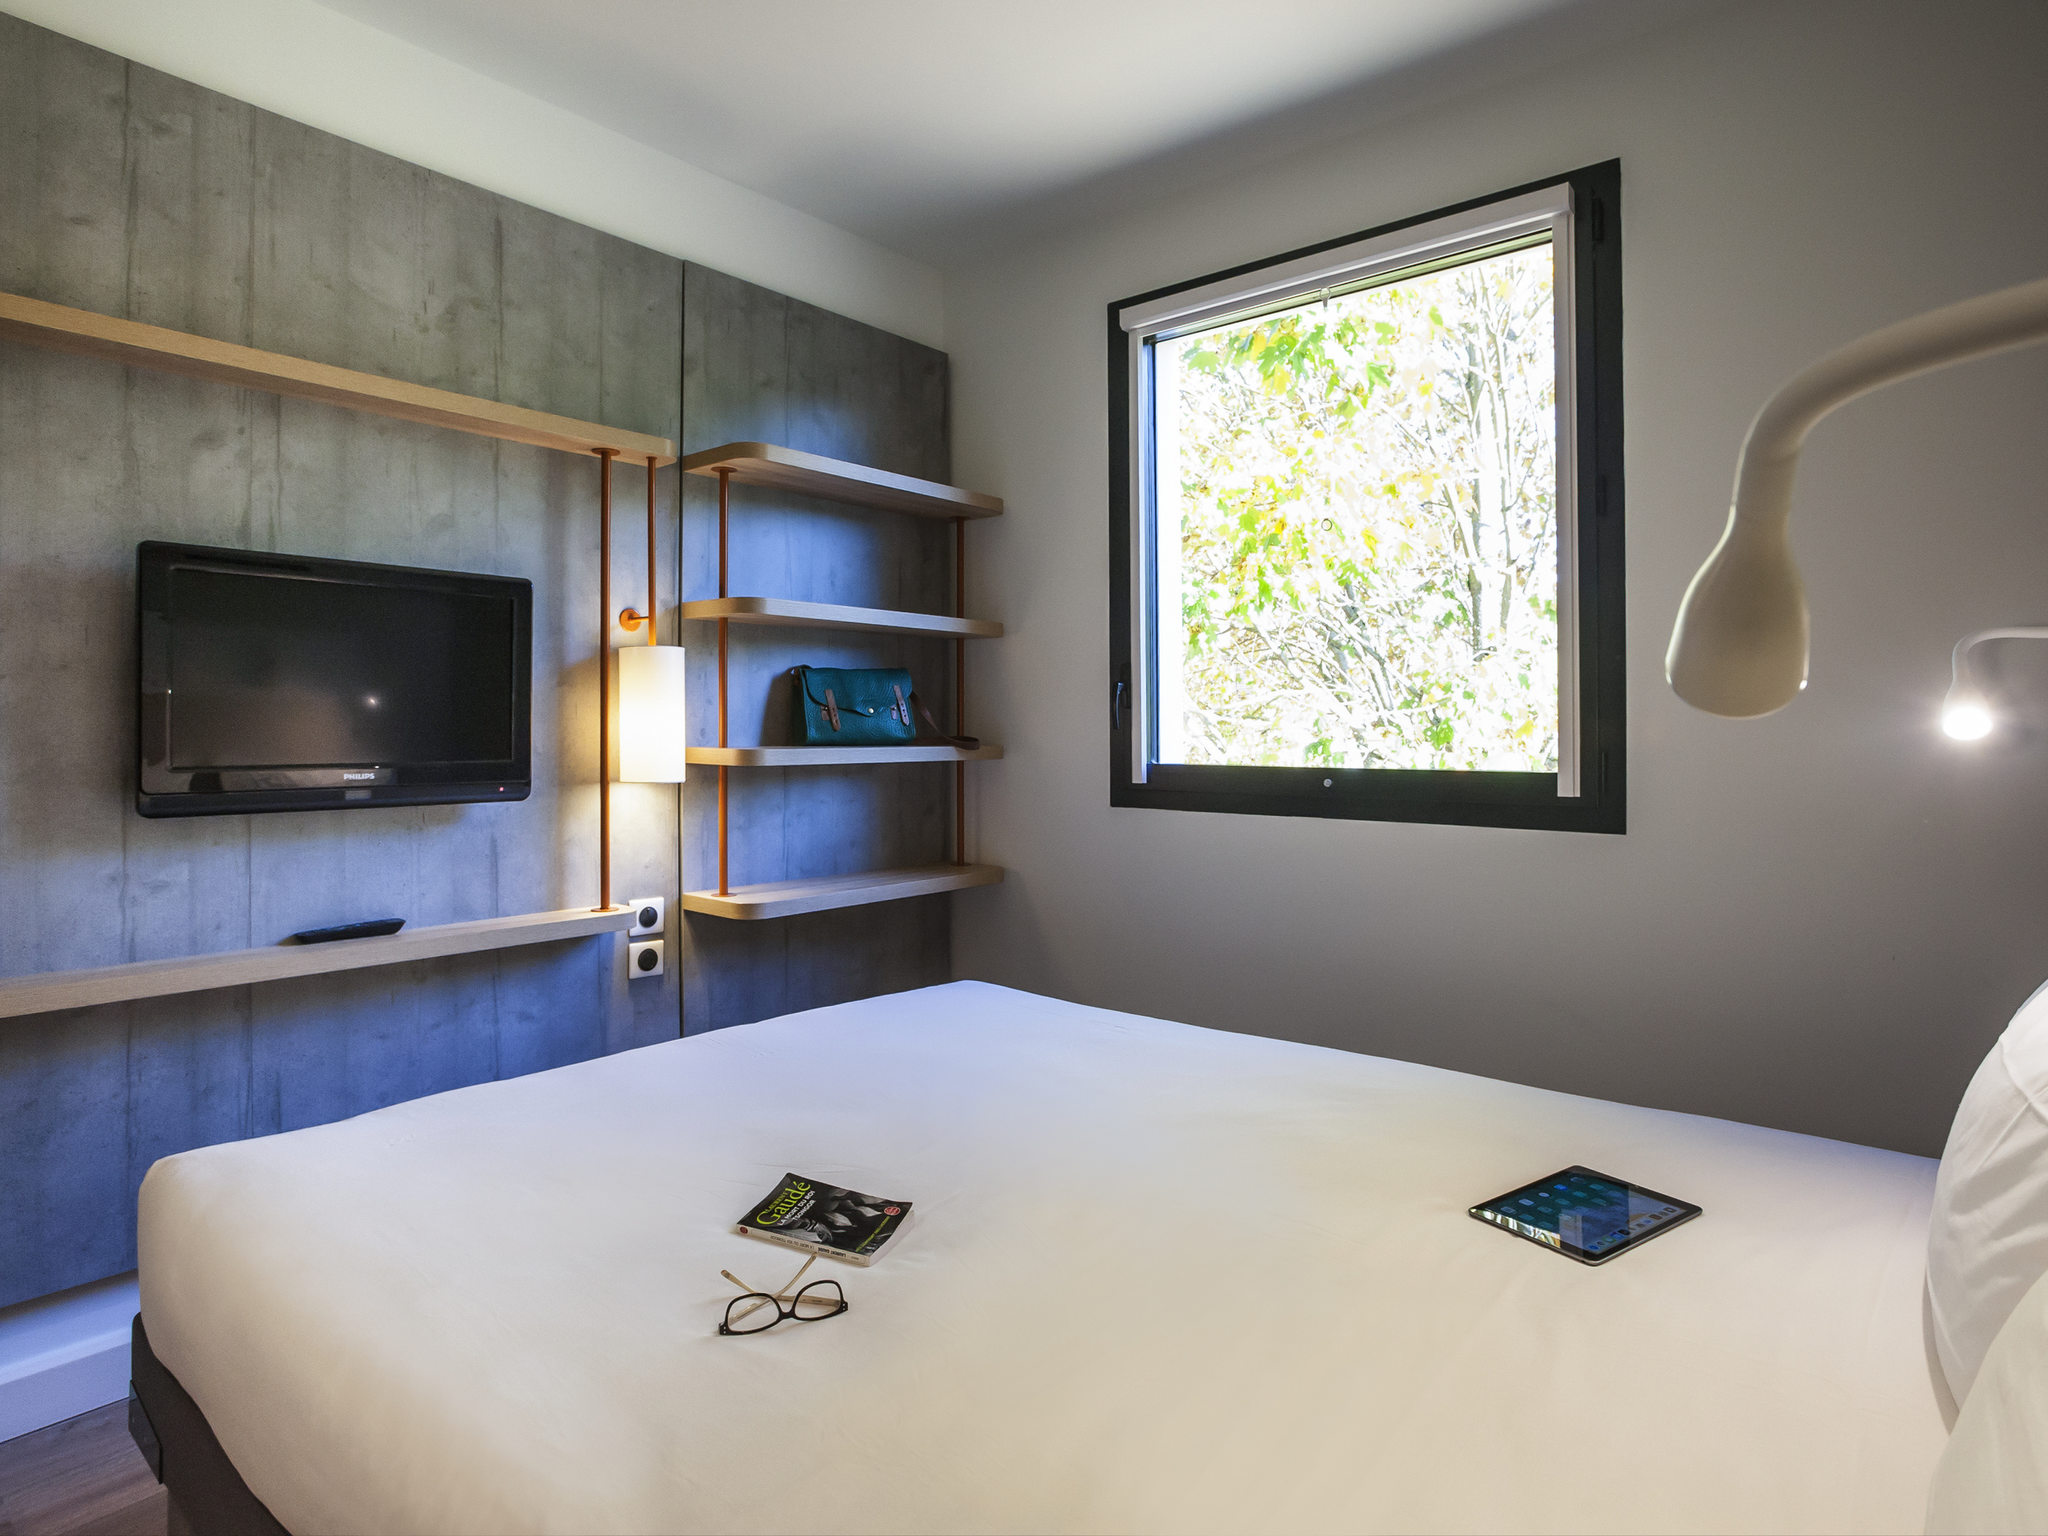 Otel – ibis budget Château-Thierry (Opening June 2018)